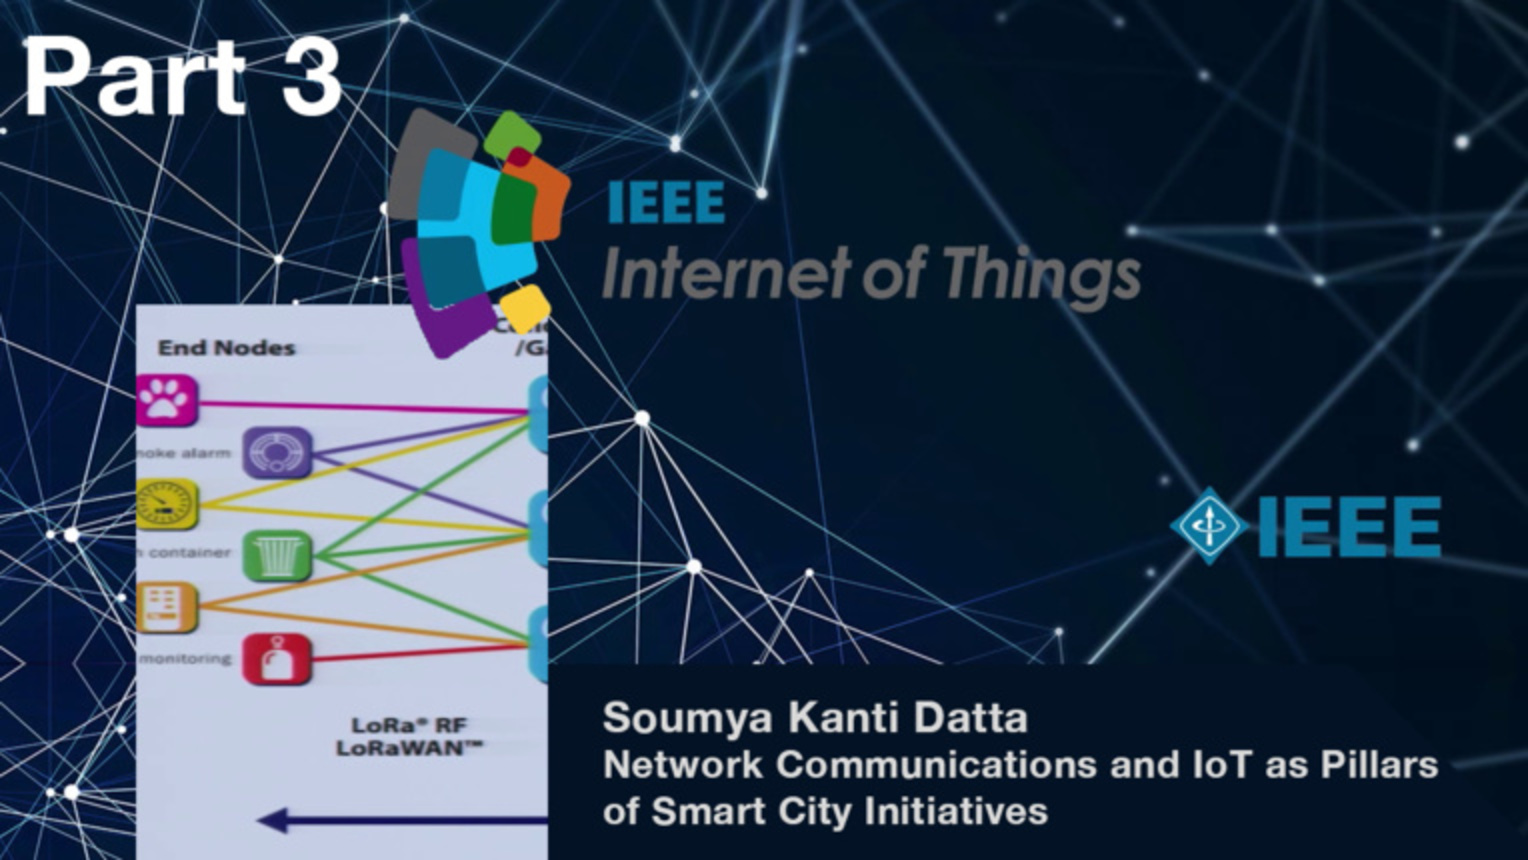 Part 3: Network Communications and Internet of Things as Pillars of Smart City Initiatives - Soumya Kanti Datta, IEEE WF-IoT 2015